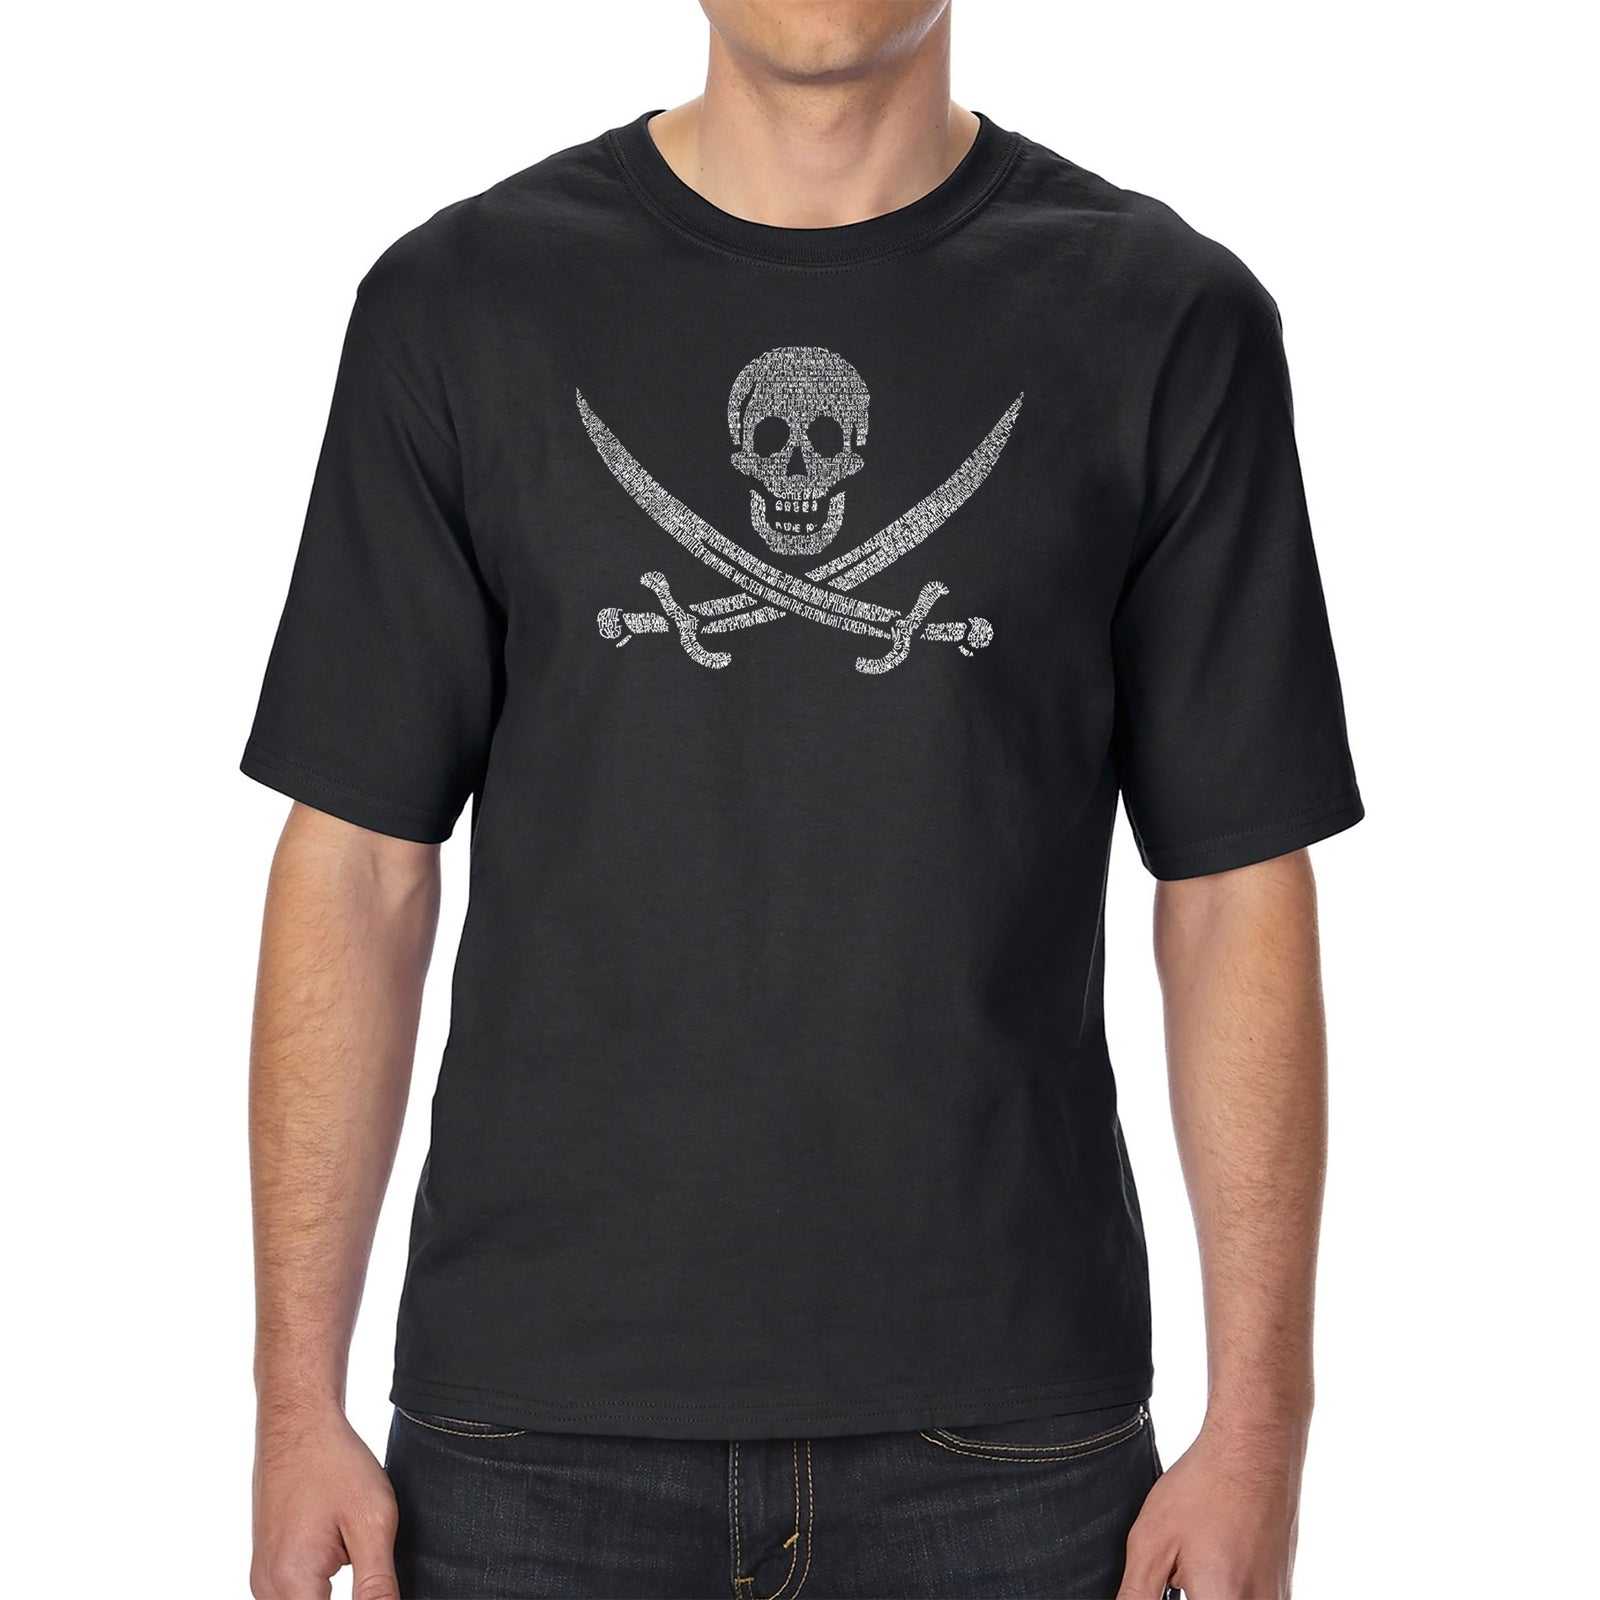 Men's Tall and Long Word Art T-shirt - LYRICS TO A LEGENDARY PIRATE SONG